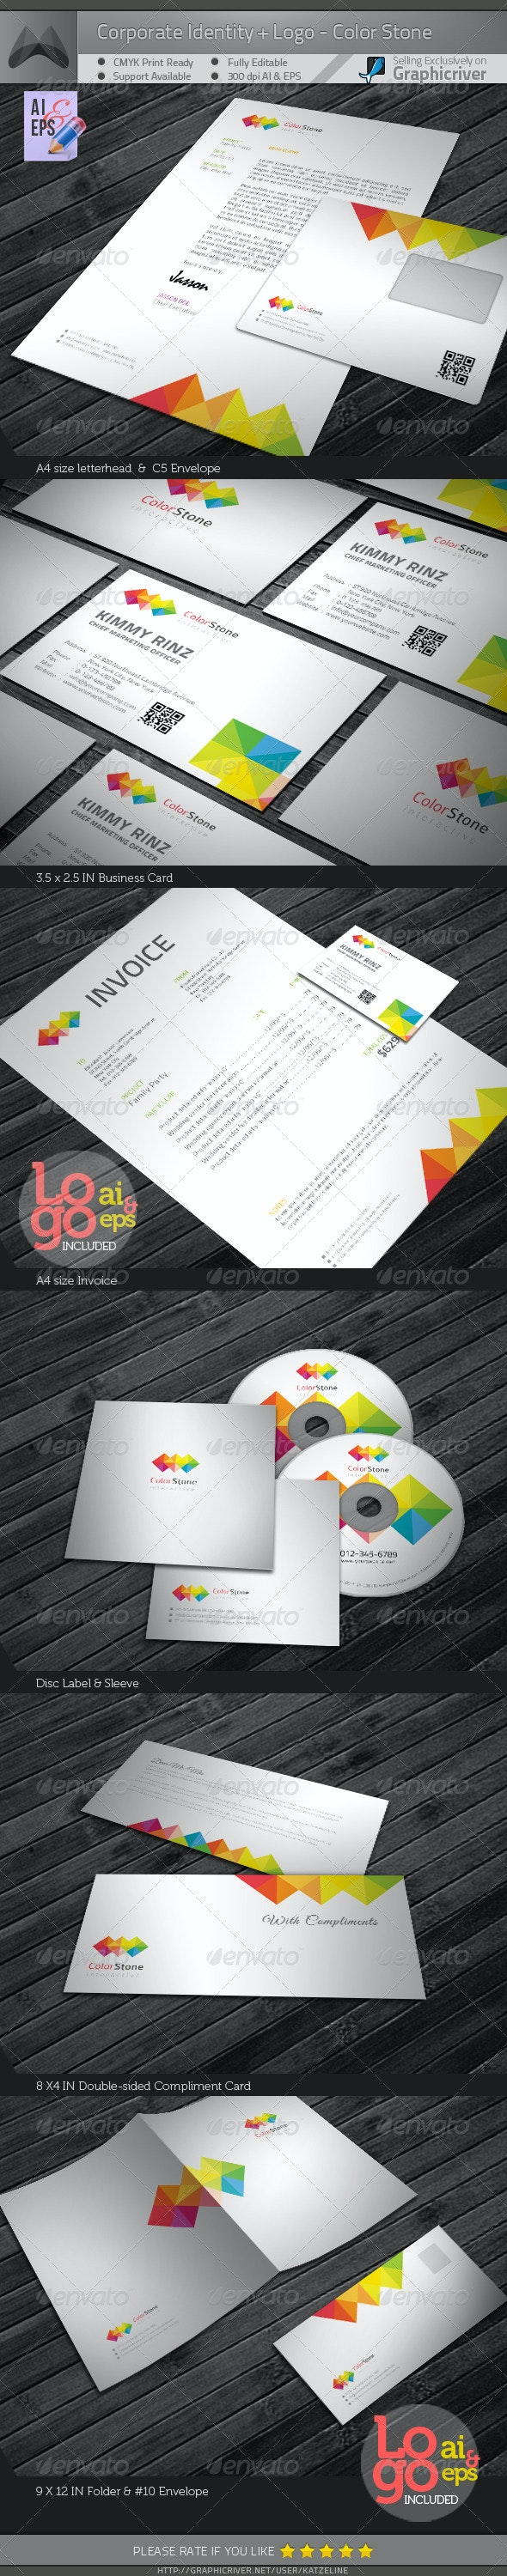 Corporate Identity Package - Color Square - Stationery Print Templates